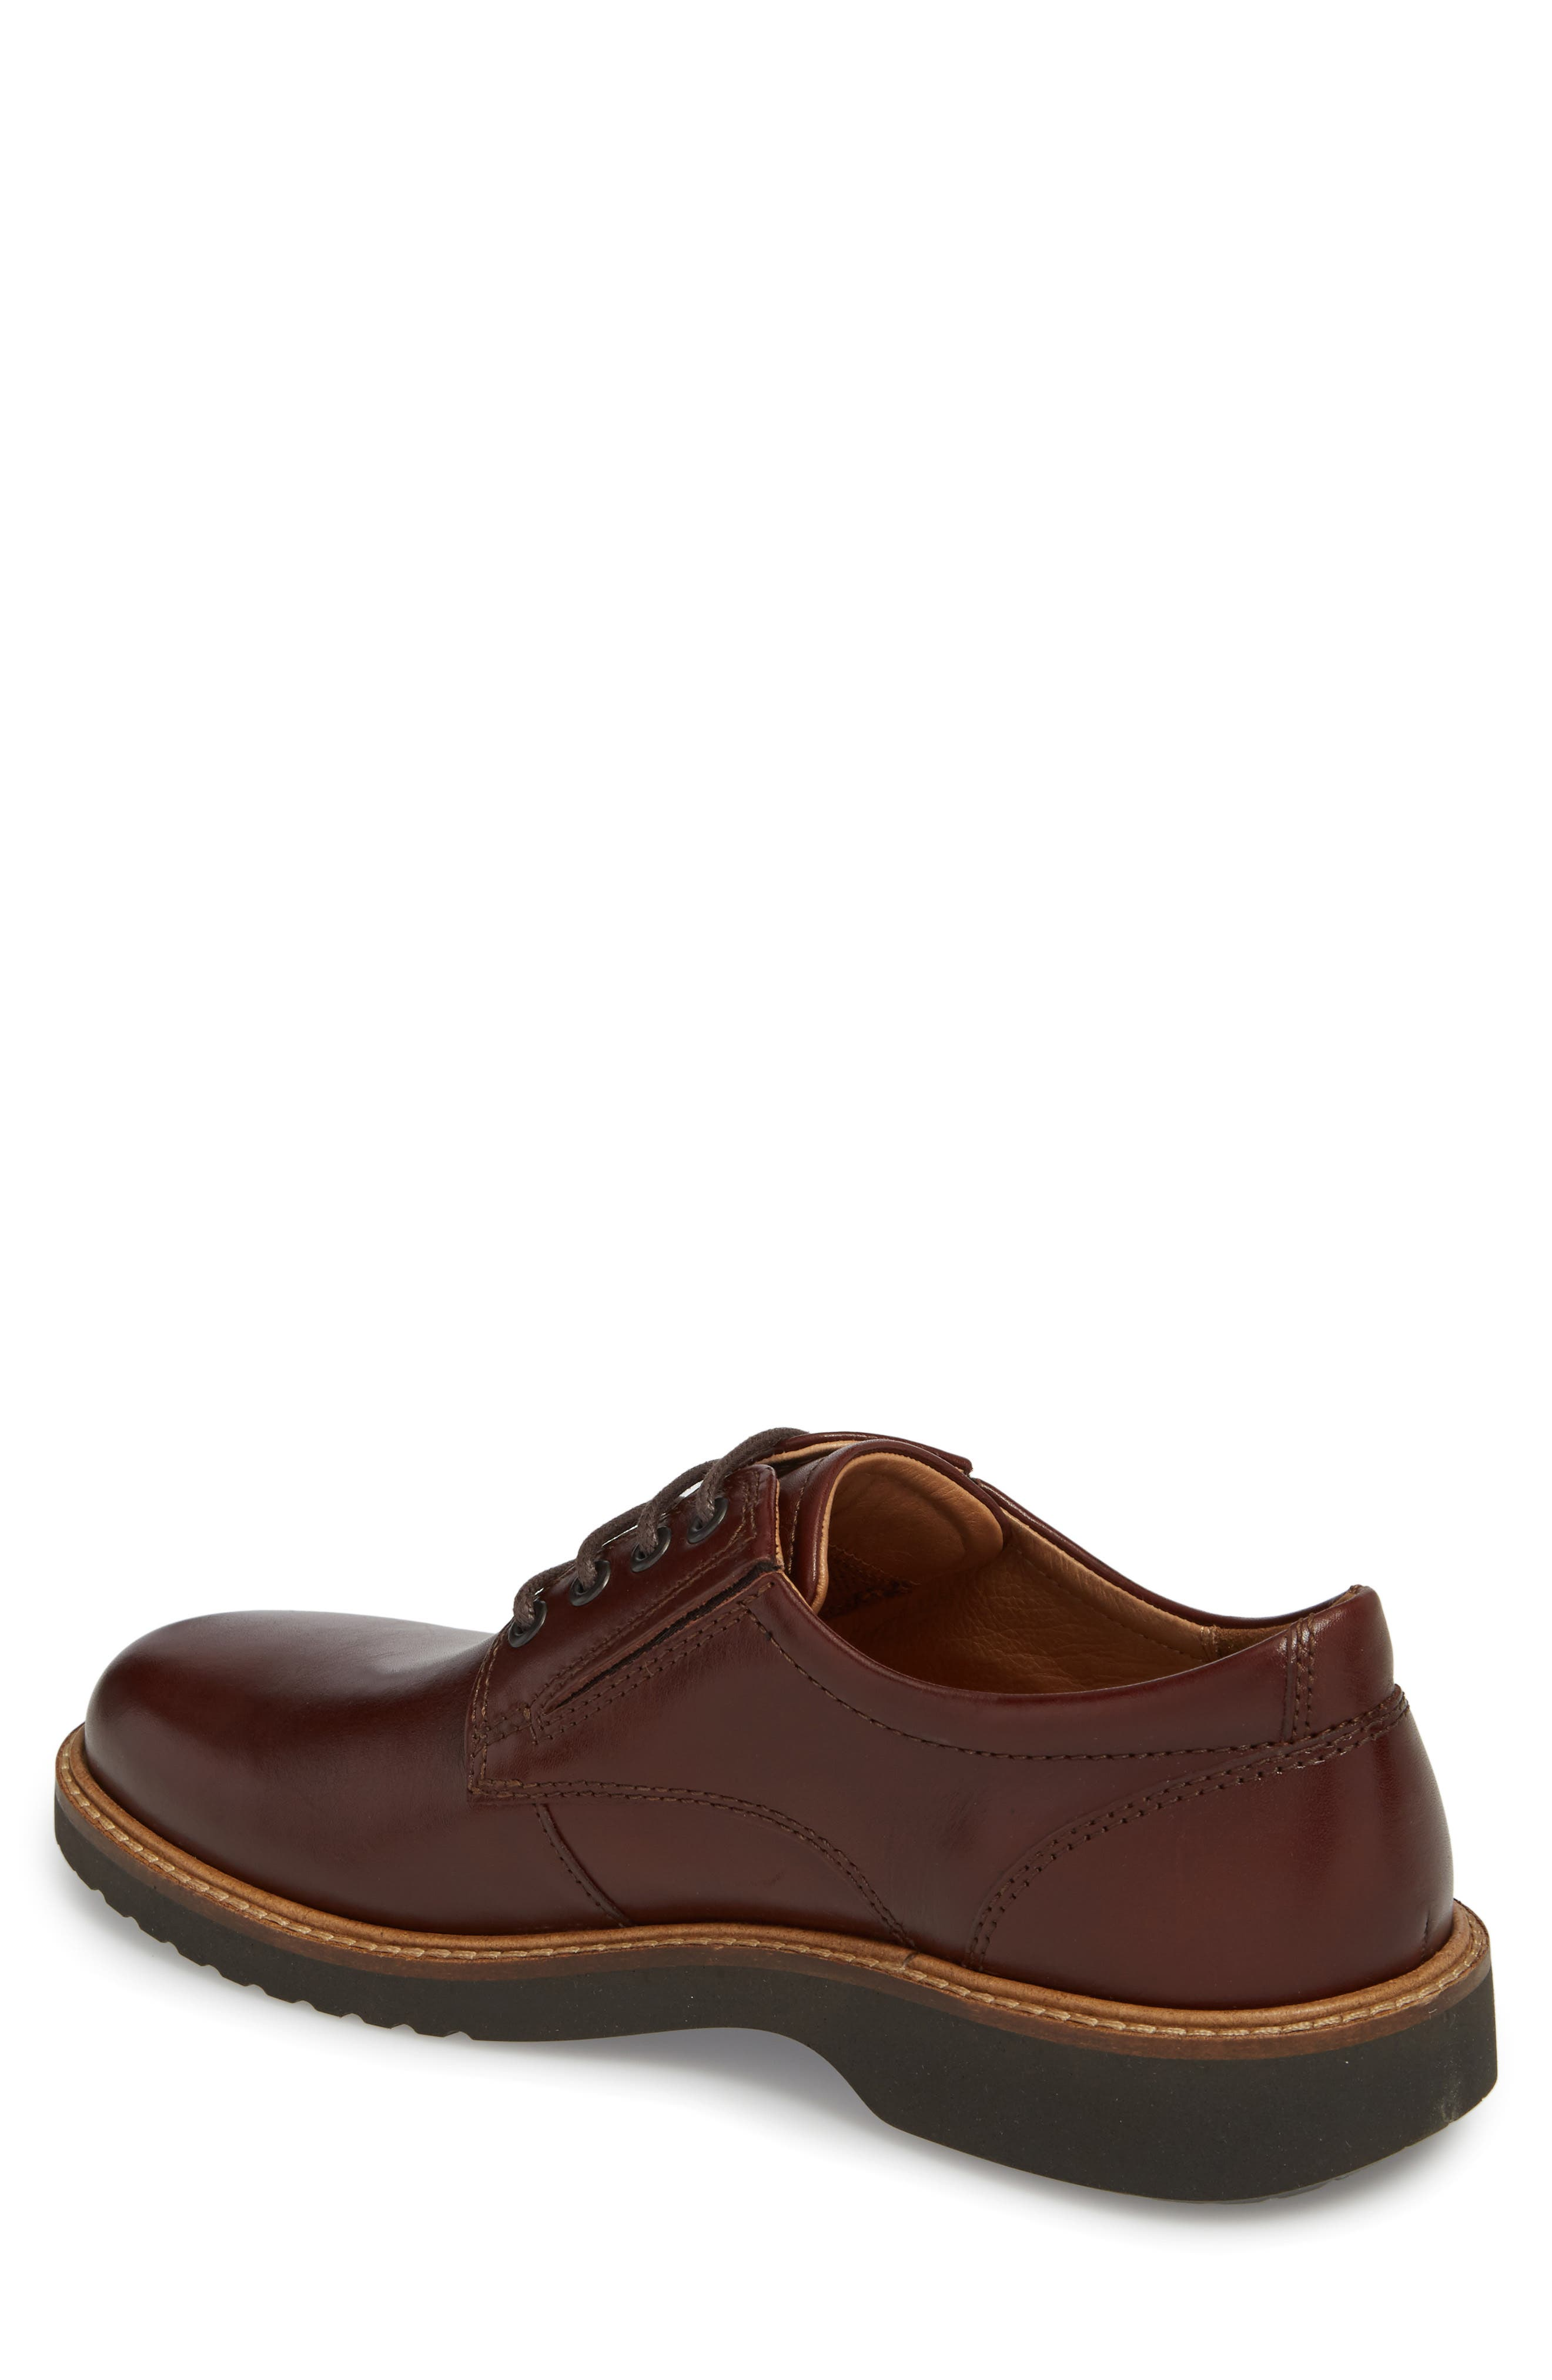 Ian Casual Plain Toe Derby,                             Alternate thumbnail 2, color,                             Mink Leather